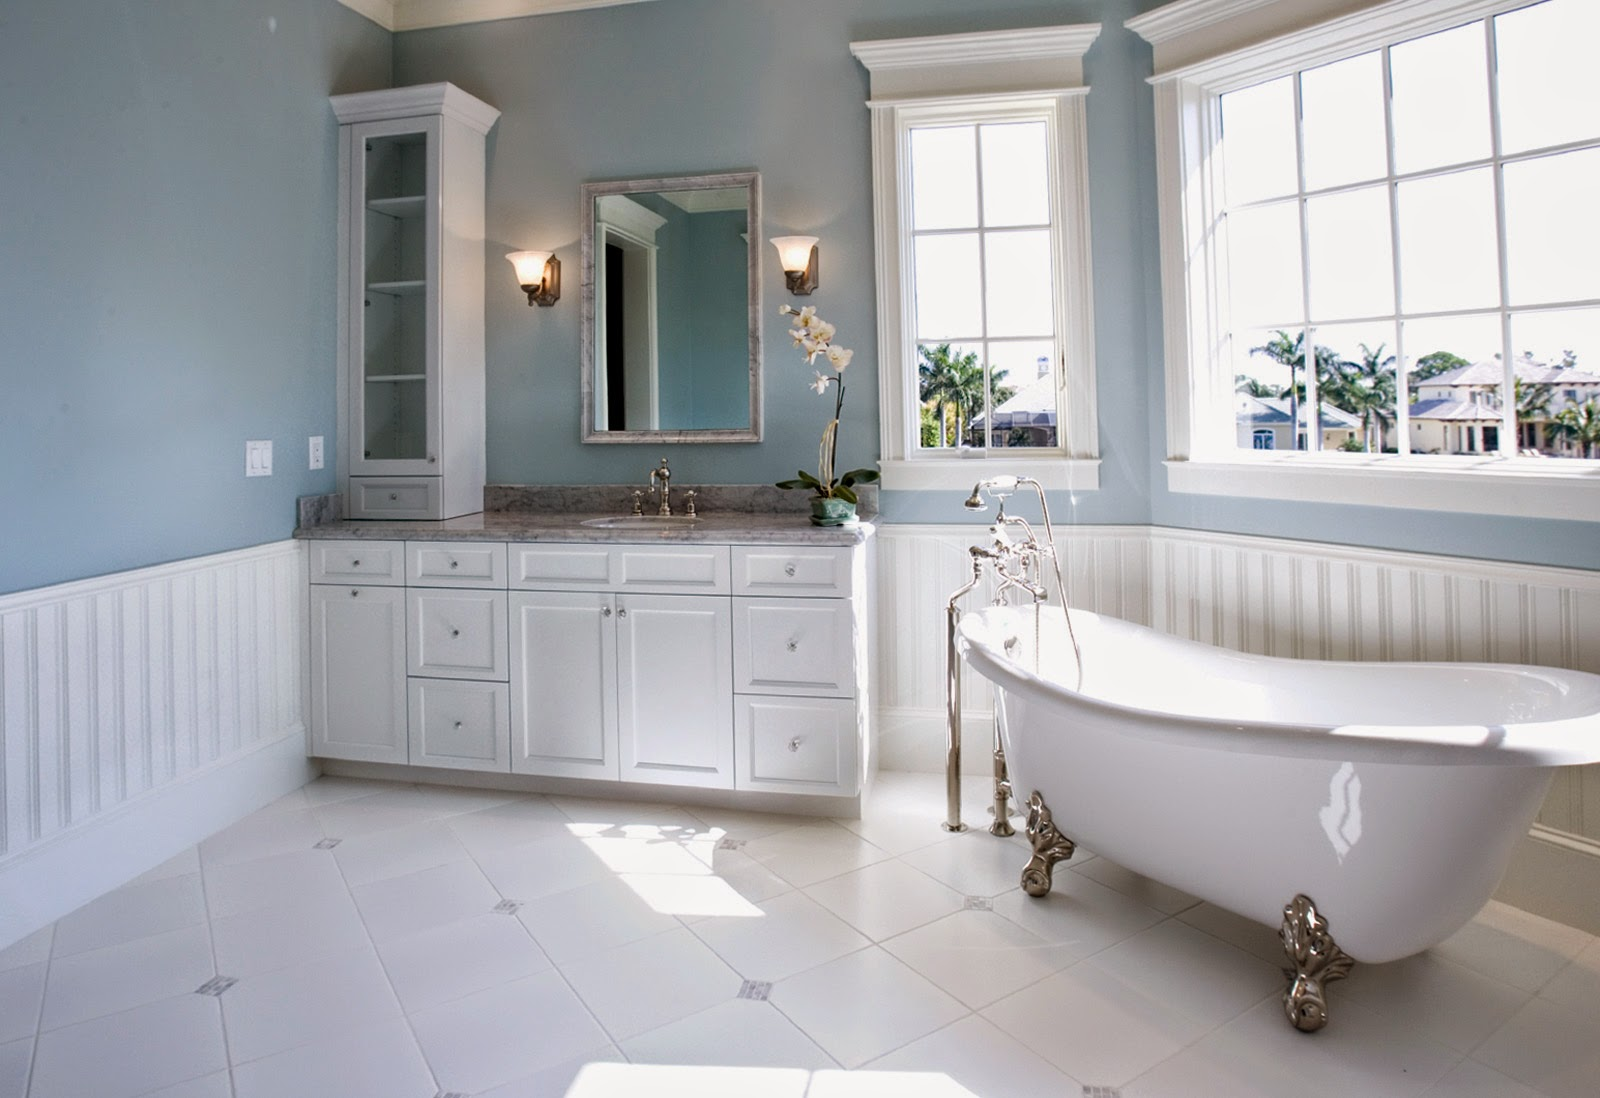 Top 10 beautiful bathroom design 2014 home interior blog for Pictures for your bathroom